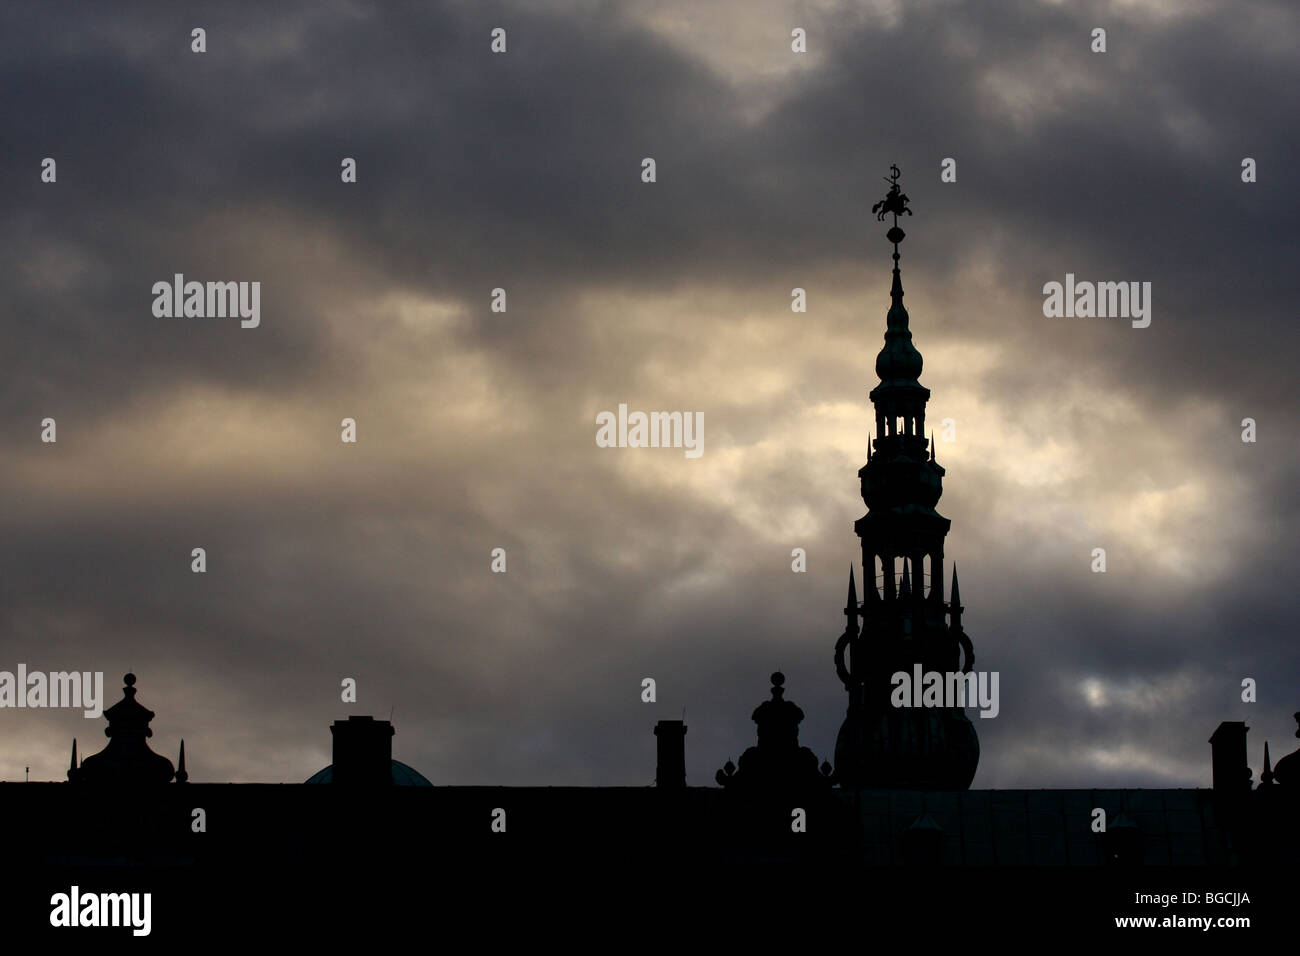 Silhouette of the Kronborg Castle in Helsingør (in English also known as Elsinore) on the island of Zealand Denmark Stock Photo